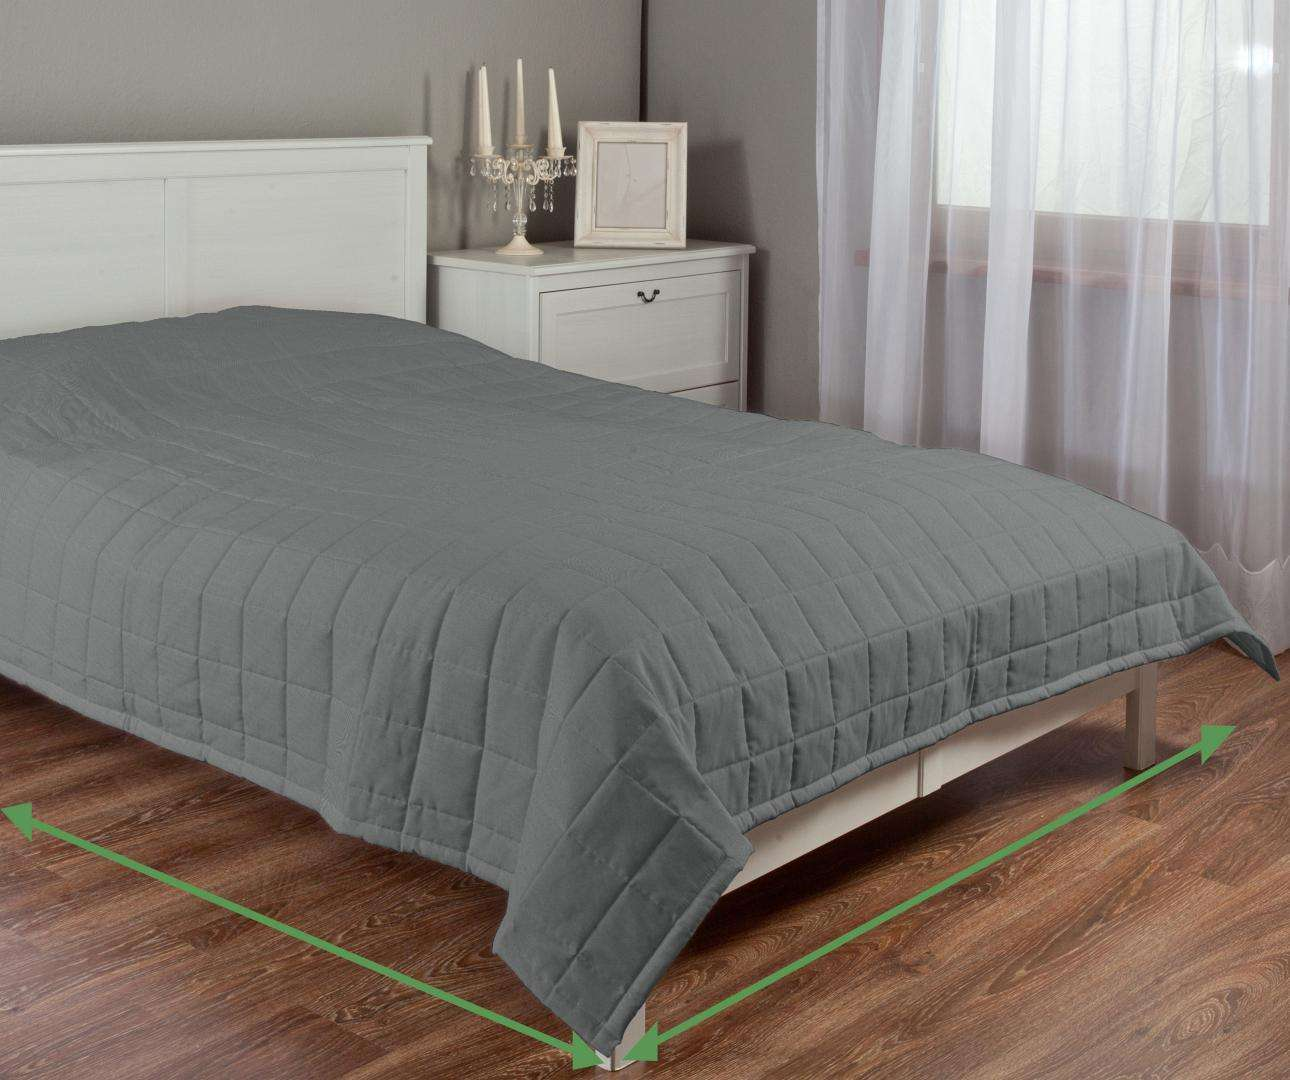 Quilted throw (check quilt pattern) in collection Milano, fabric: 150-28